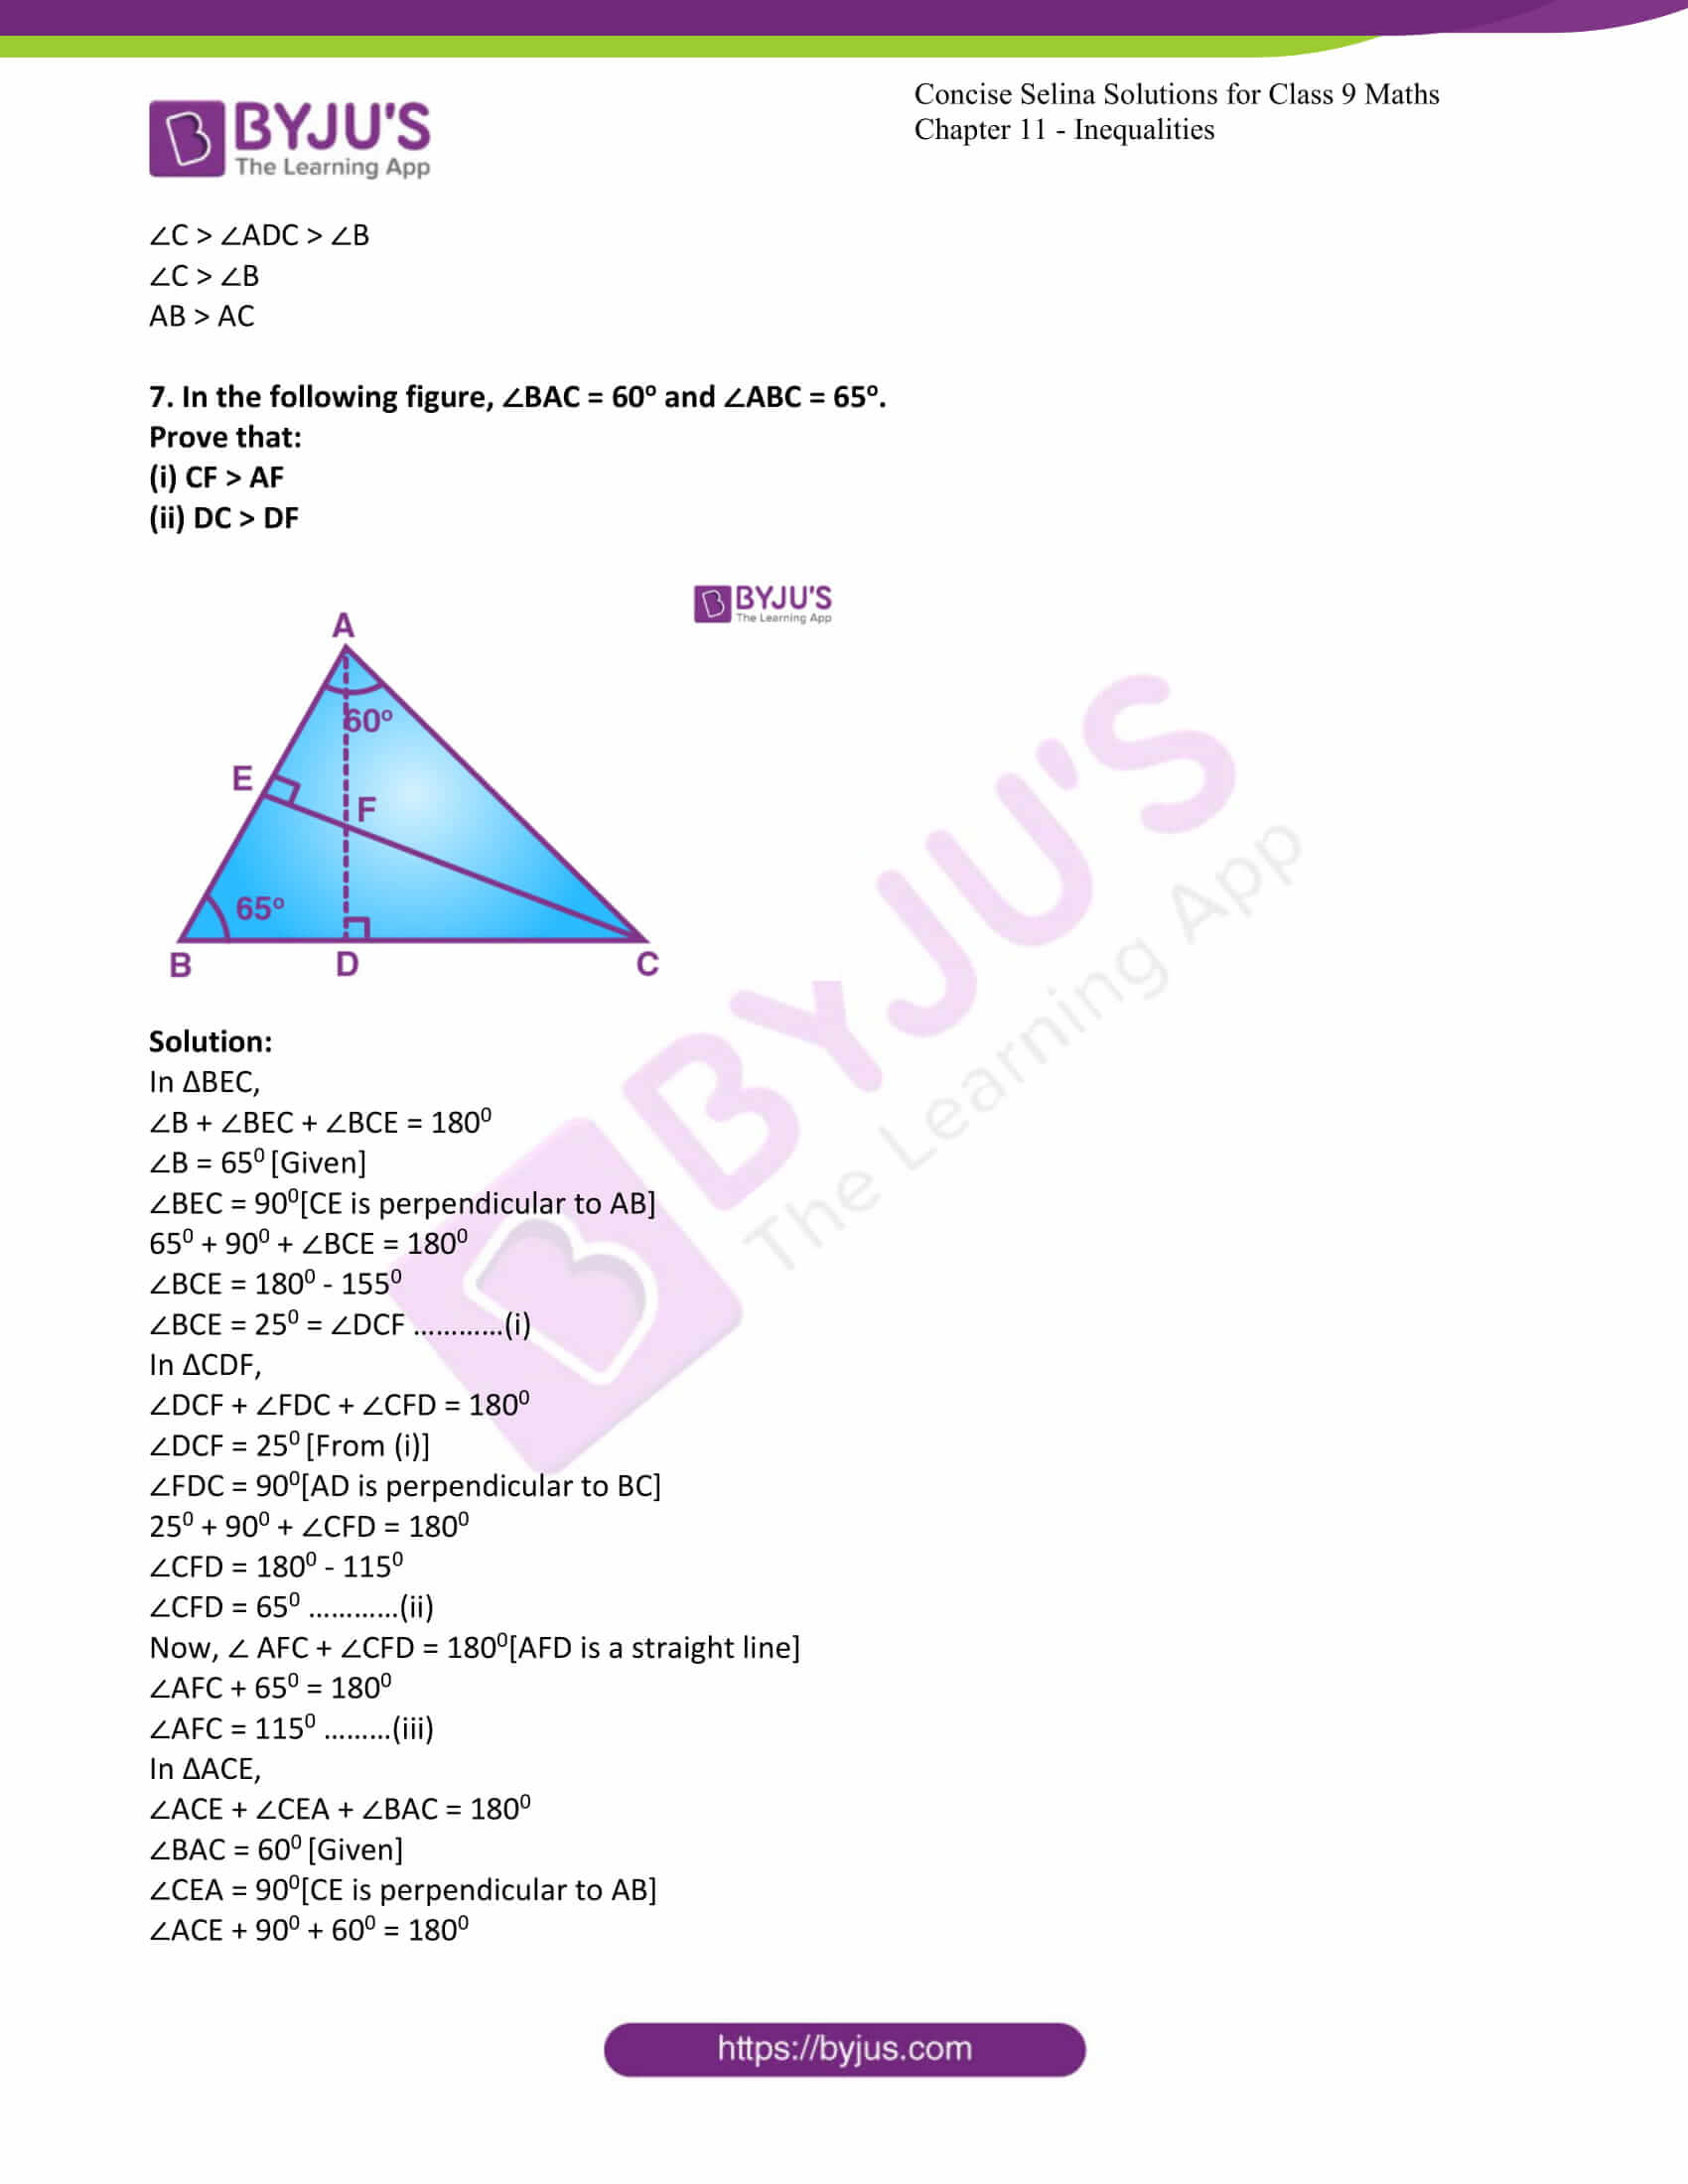 icse class 9 maths may10 selina solutions chapter 11 inequalities 06